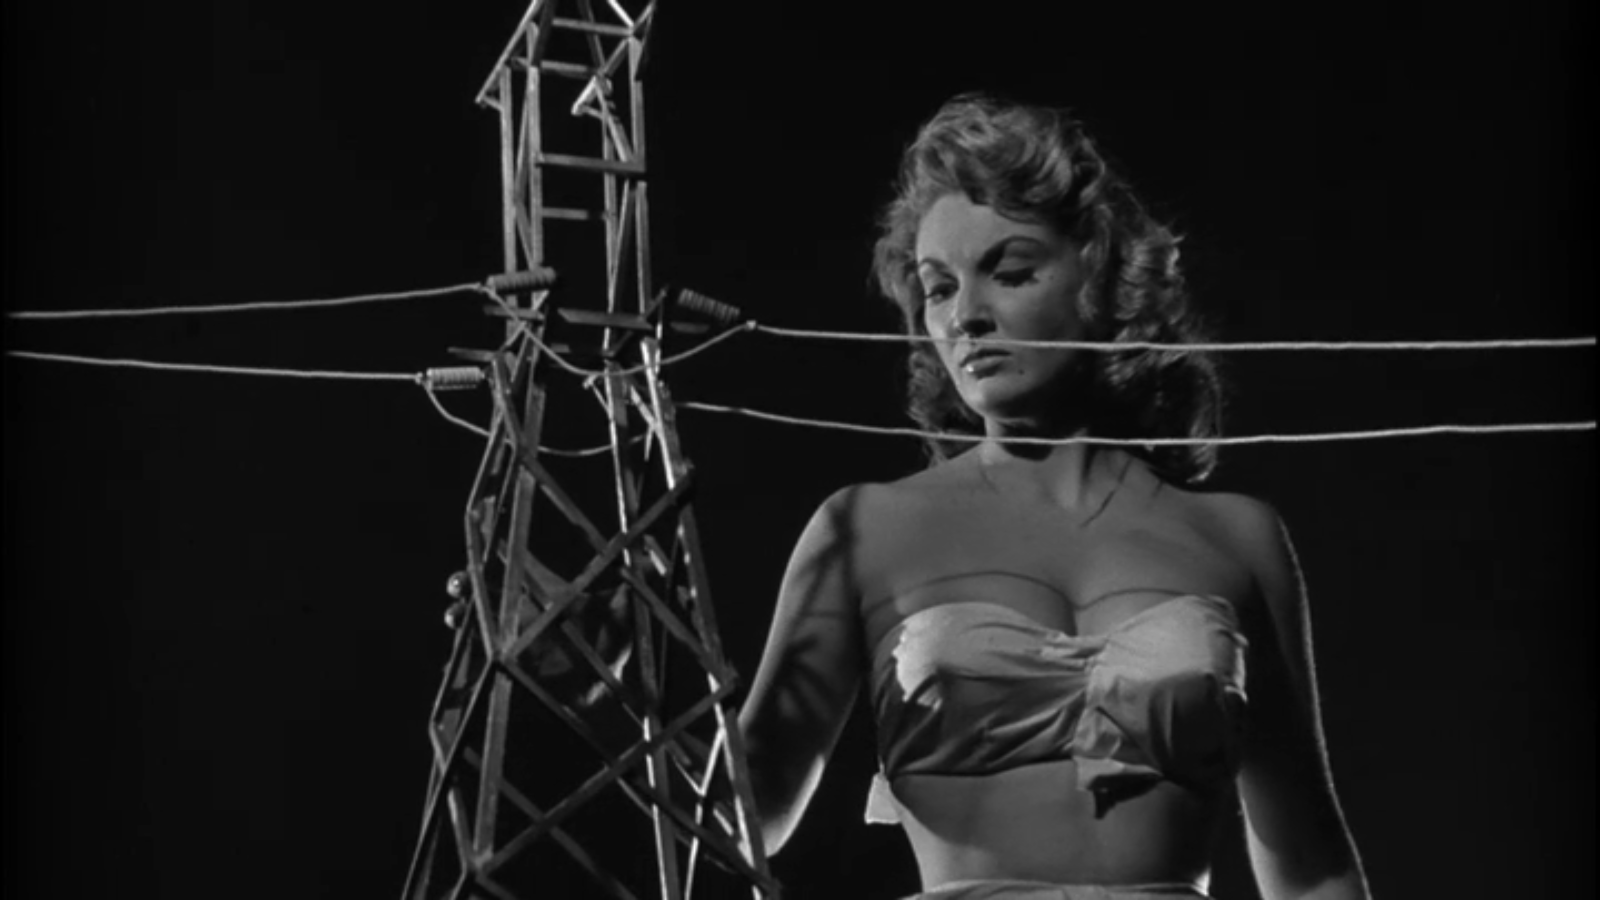 a look at the science fiction modernity in the incredible shrinking man The incredible shrinking the incredible melting man contributes commentaries to the web series trailers from hell for trailers about science fiction films.